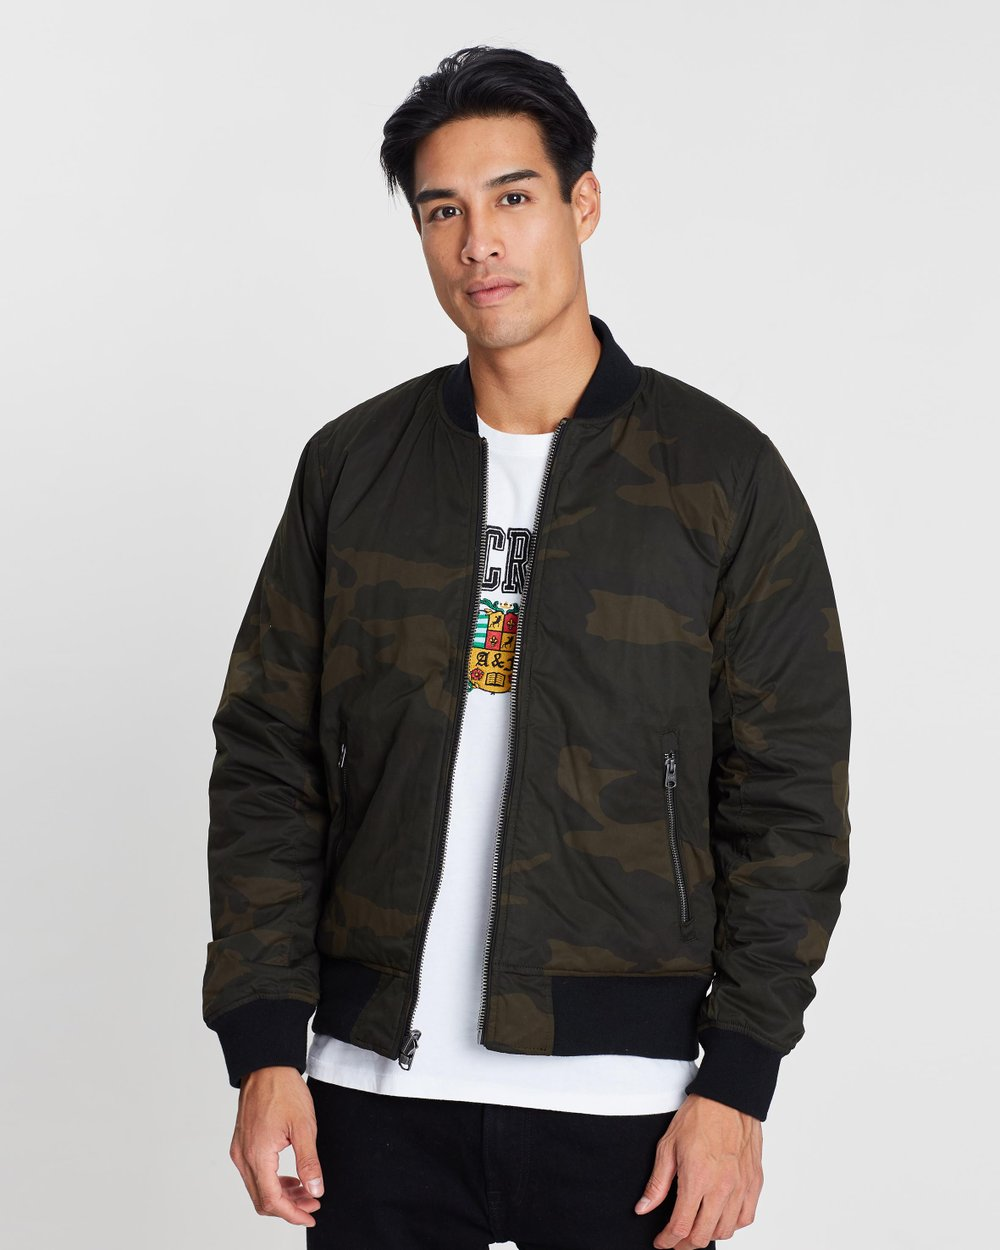 185629be2d85ae Reversible Bomber Jacket by Abercrombie & Fitch Online | THE ICONIC |  Australia